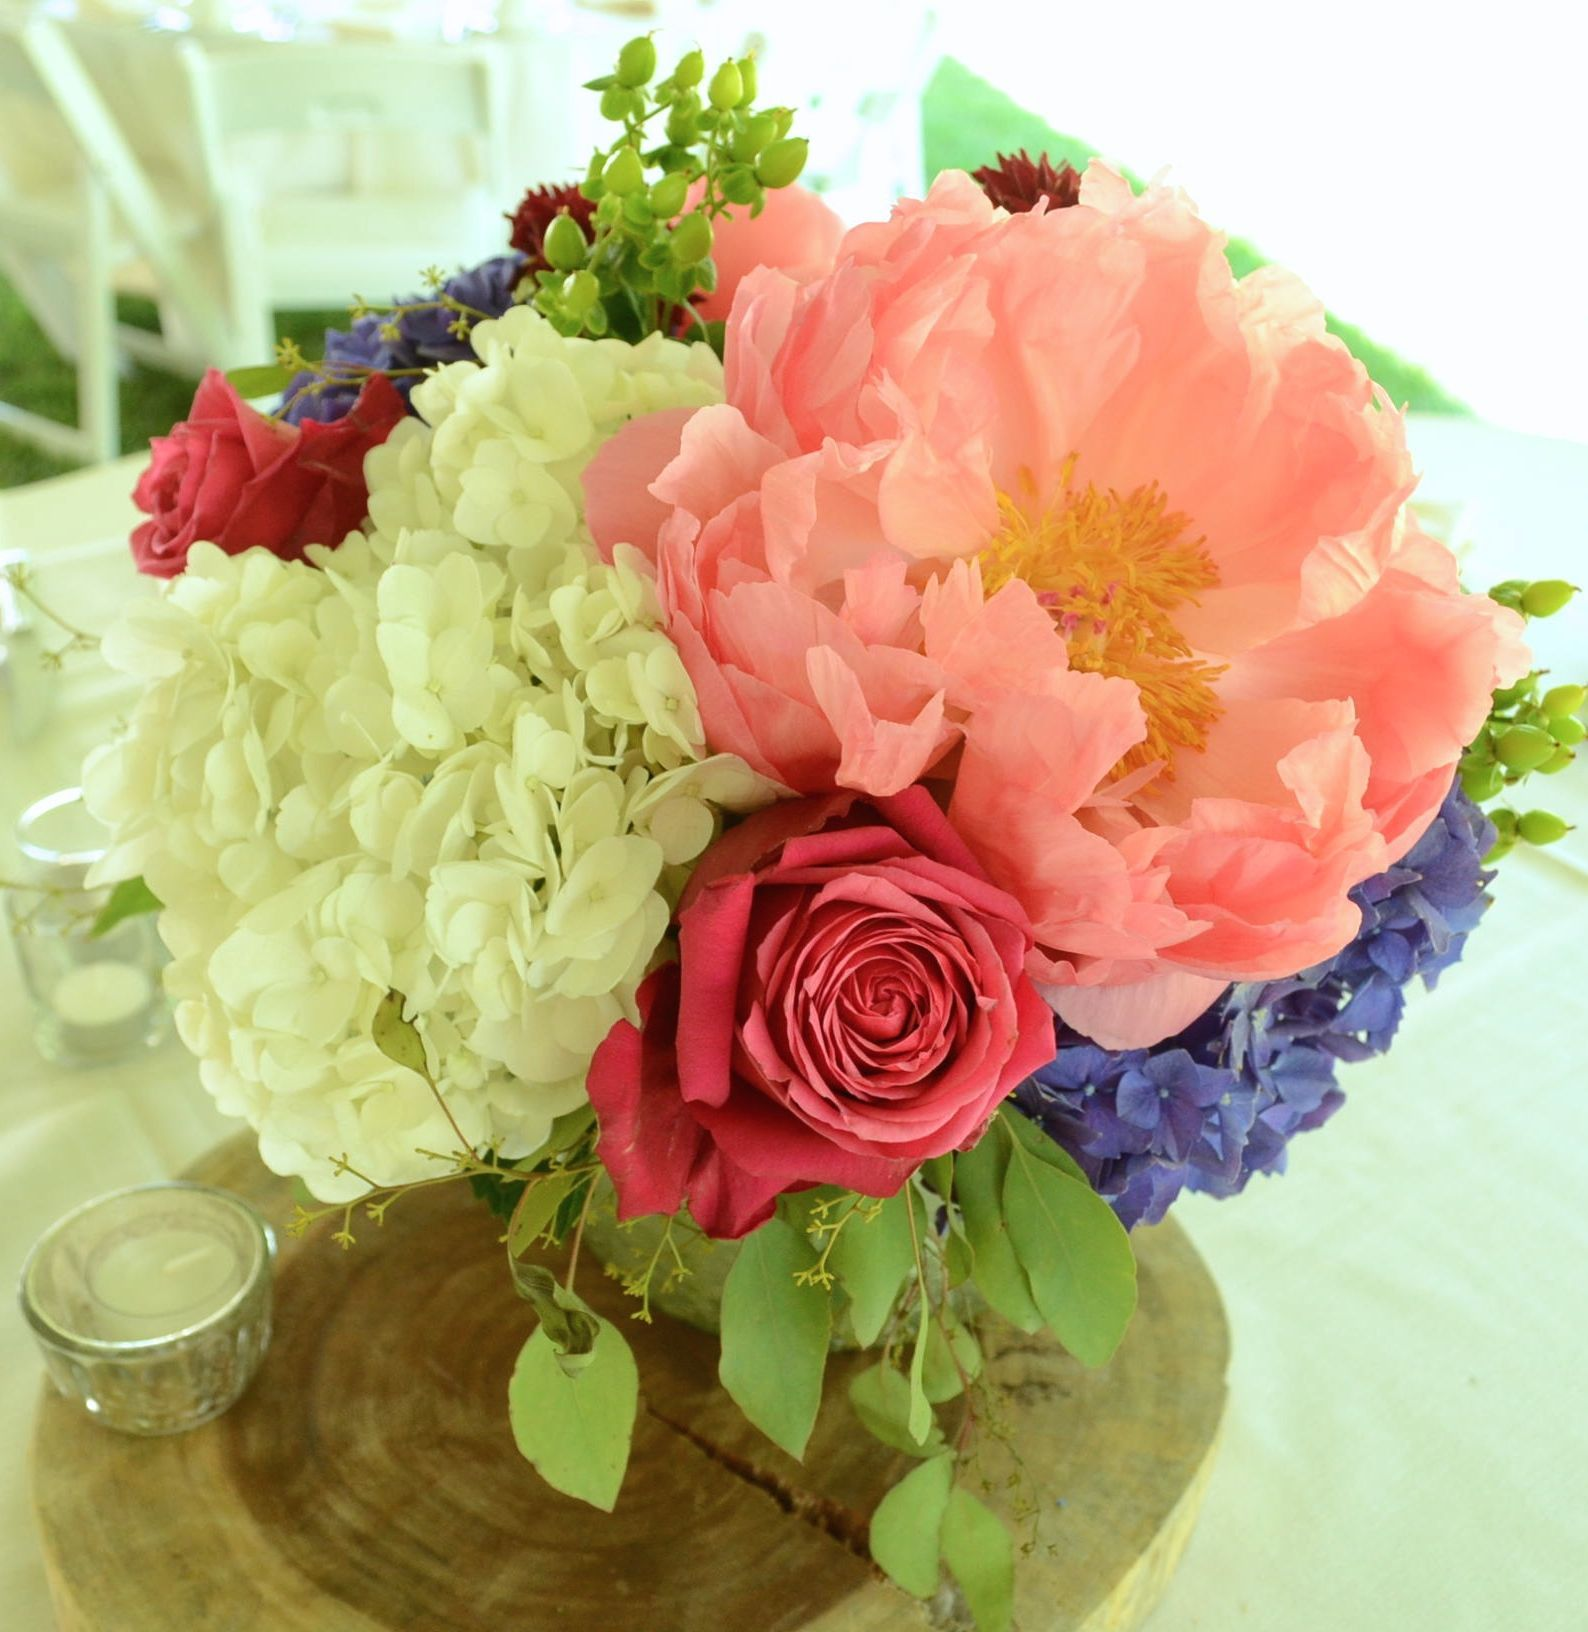 8 Inch Mercury Glass Silver Cylinder Coral Charm Peonies Purple Hydrangea Cherry O Roses White Hydrang Hydrangea Purple Coral Charm Peony White Hydrangea